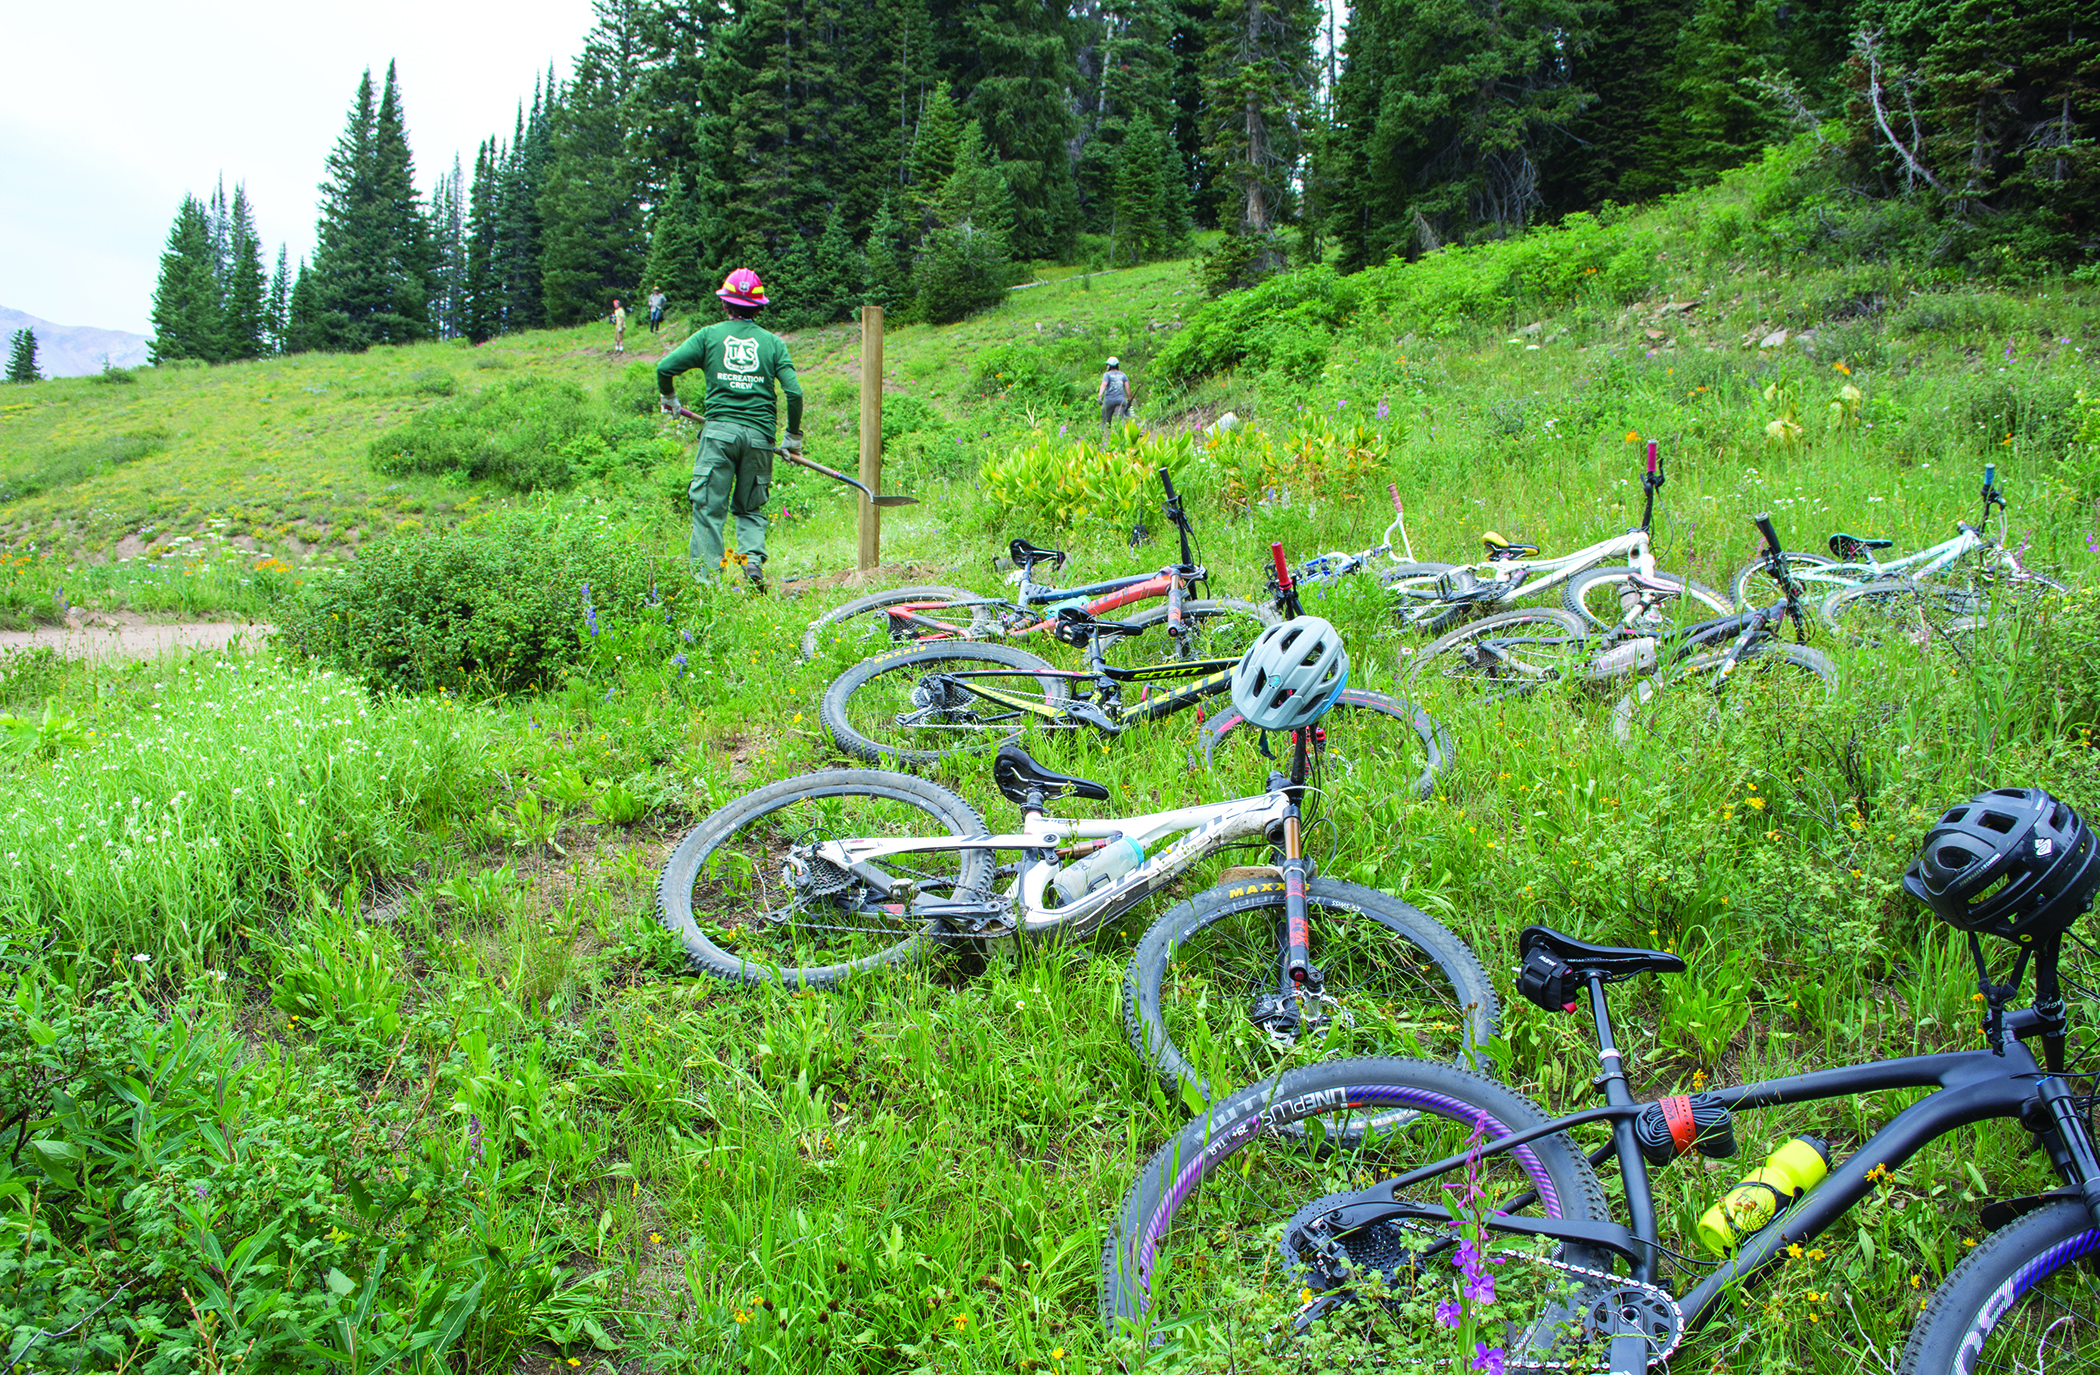 Volunteers work near Crested Butte on the Washington Gulch Trail No. 403 reroute during the 2018 Annual Campout and Work Weekend. Photos: Neill Pieper